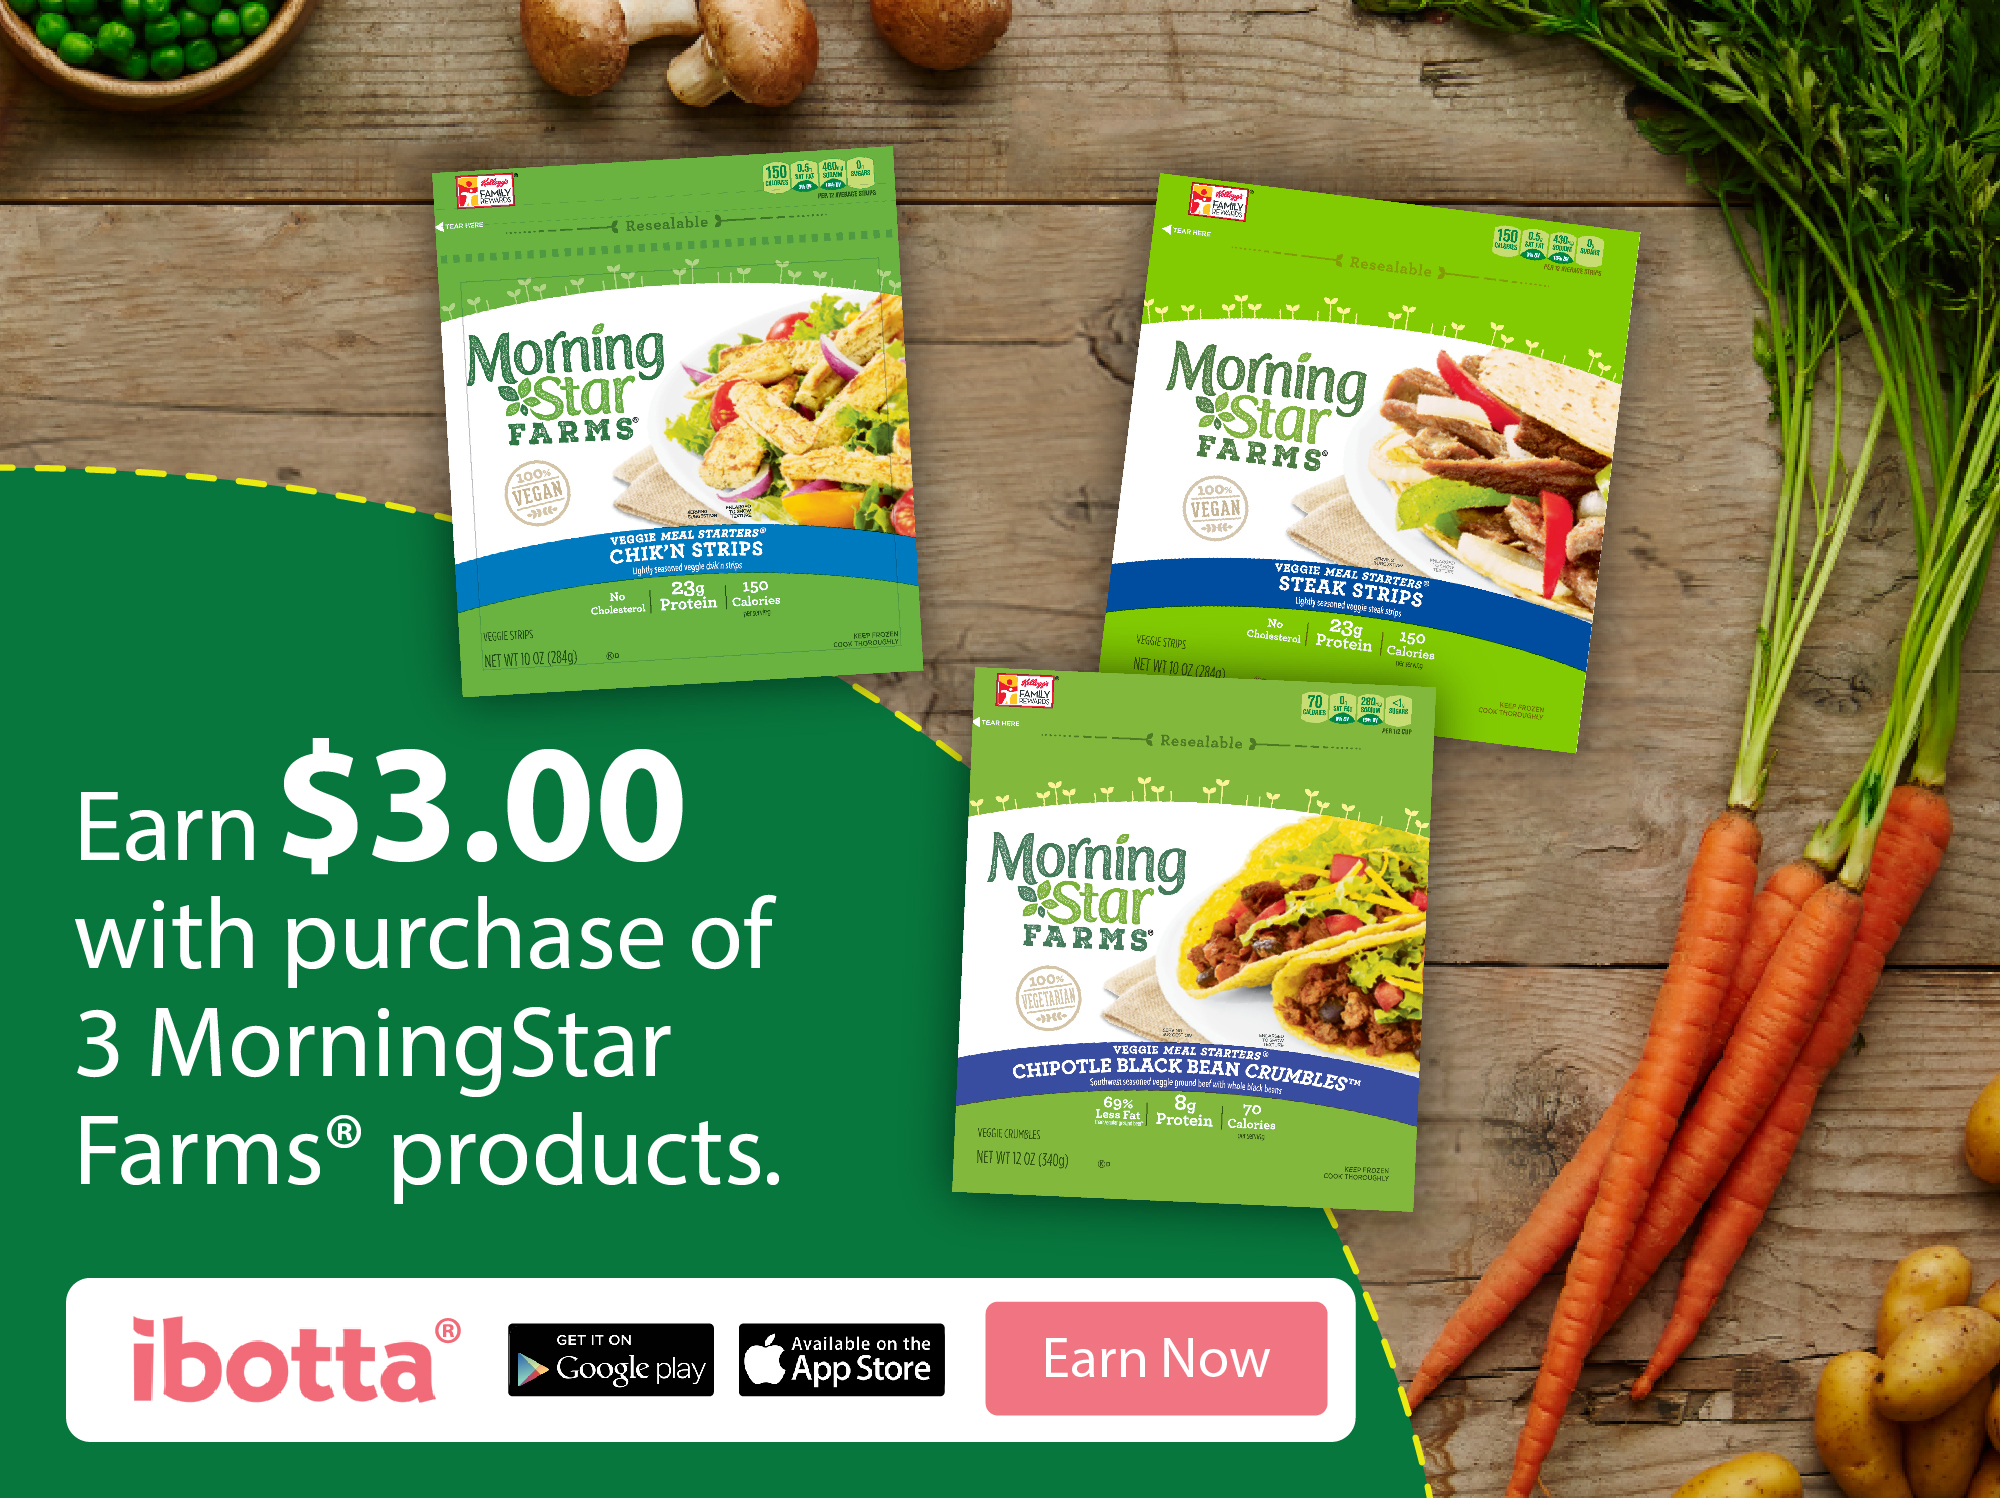 Get $3 back on Ibotta with your purchase of MorningStar Farms® products! #DailyVegolutions #ad